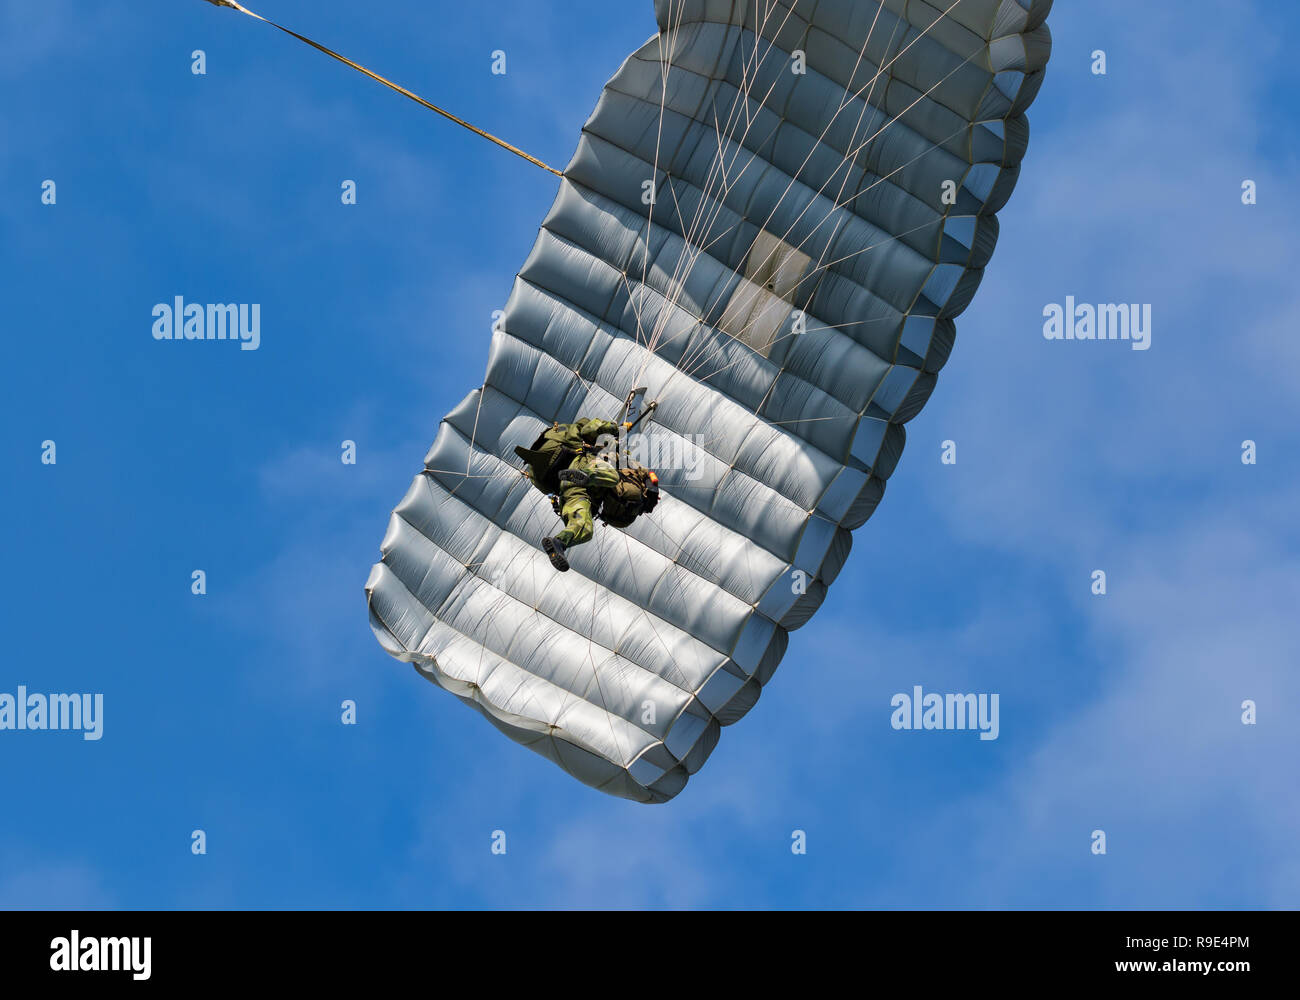 paratrooper against blue sky - Stock Image